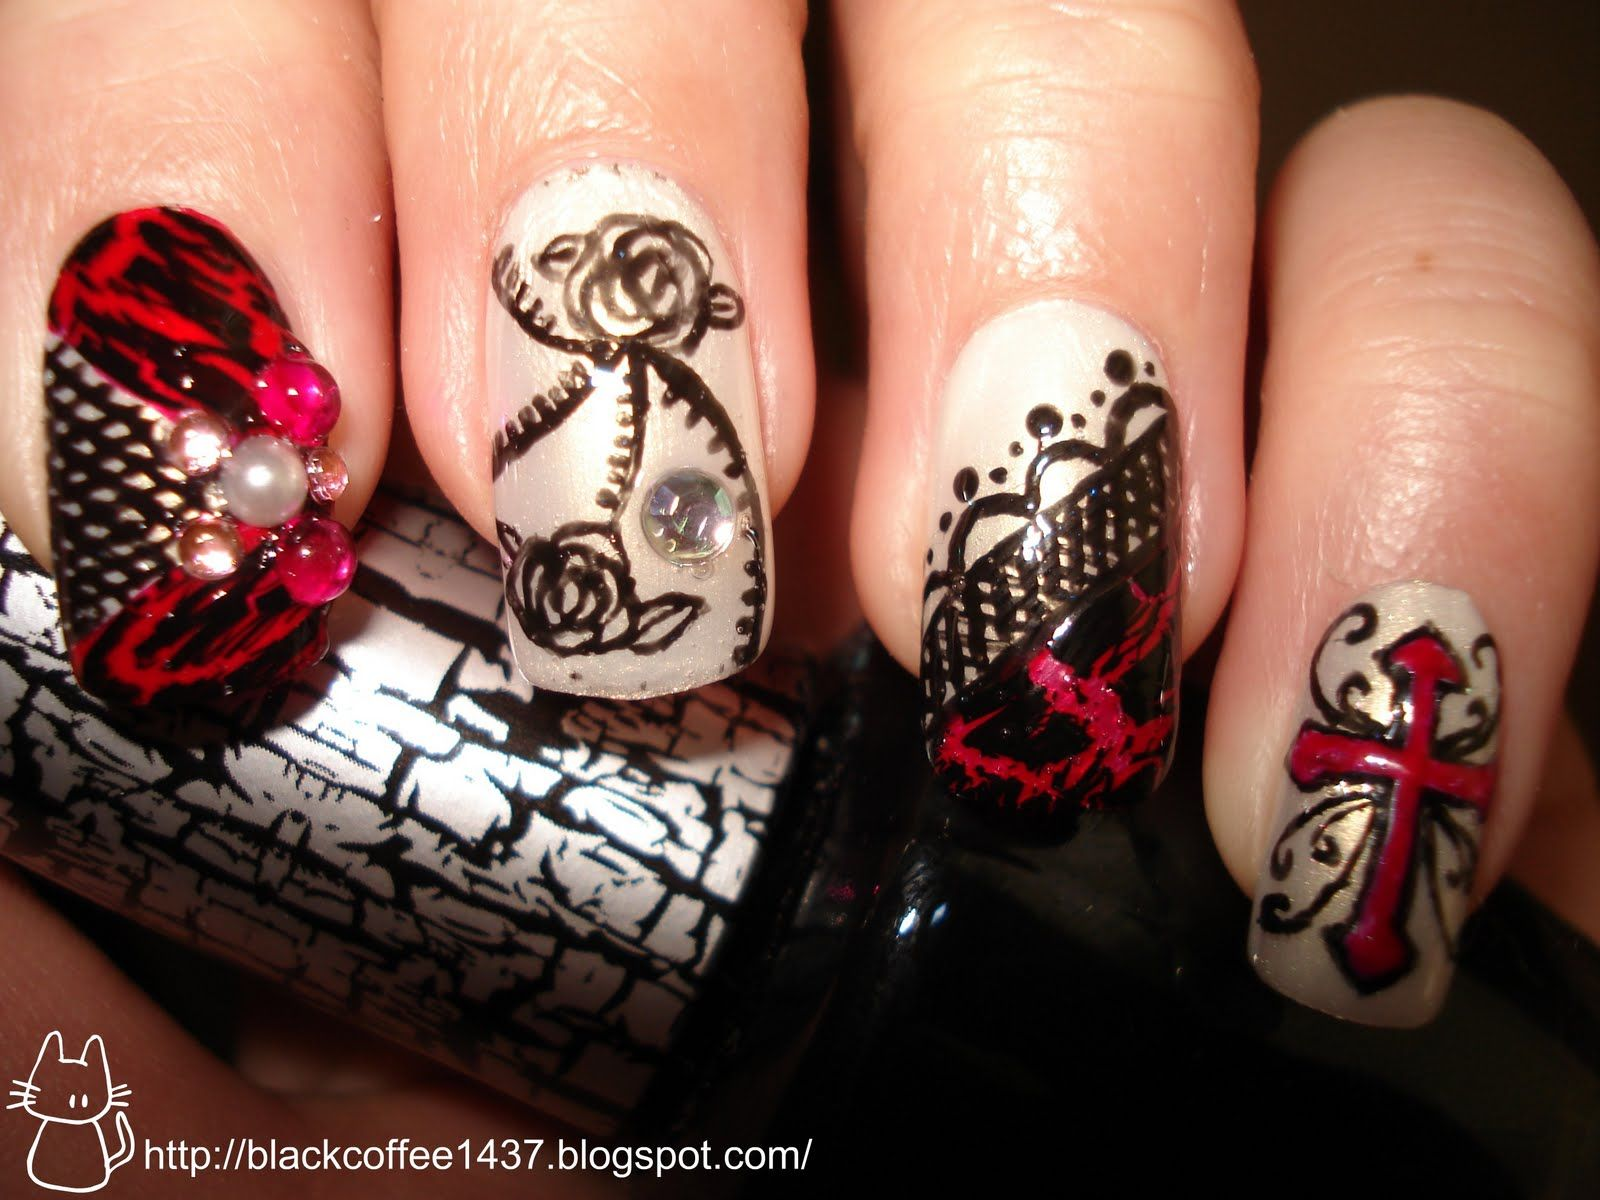 Goth Nail Designs Figured This Would Be The Best Time To Use Black